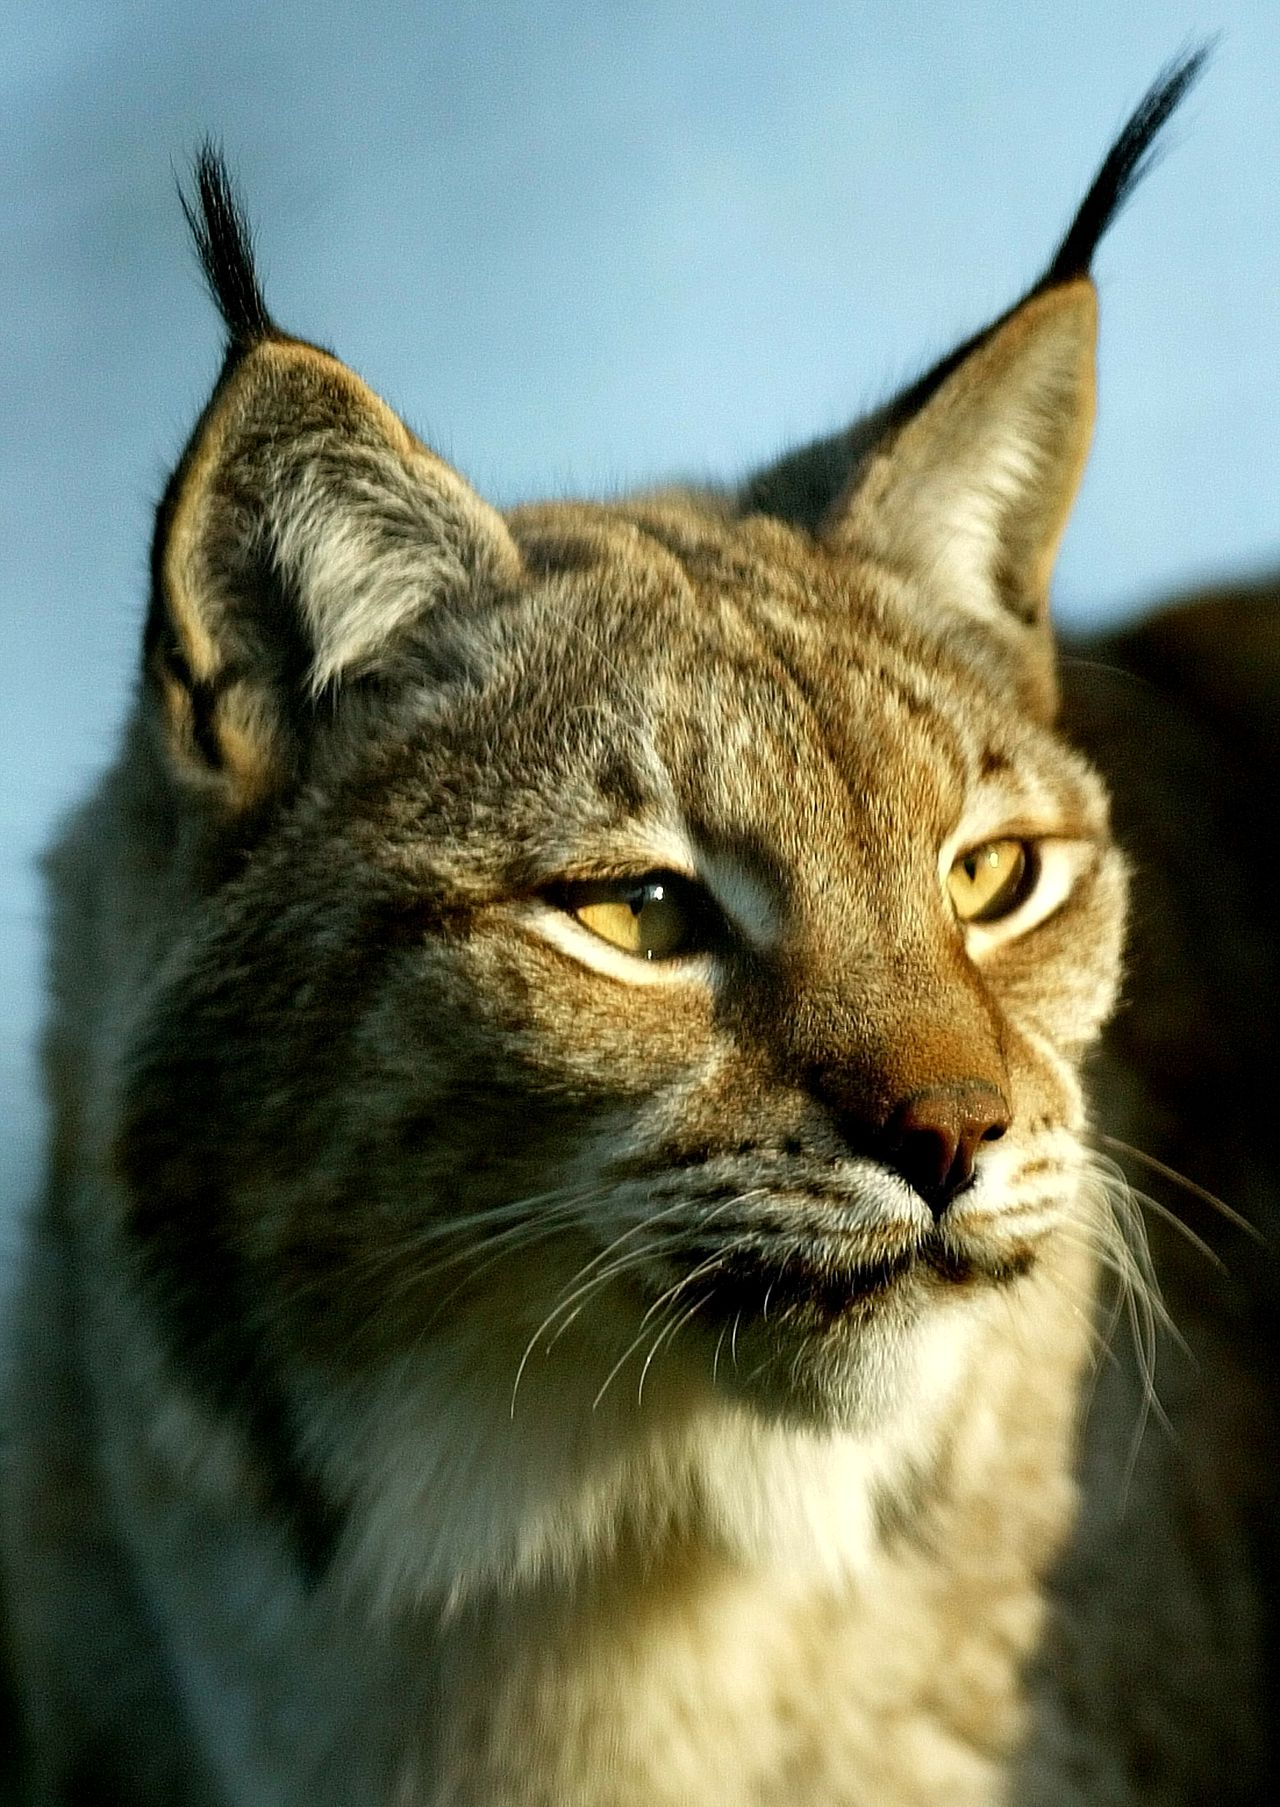 Lynx foto Reuters A lynx looks from his cage at the Santillana del Mar's Zoo in northern Spain, March 12, 2005. With only around 100 lynxes left in southern Spain, the animal could soon be the first big cat species to become extinct since the sabre-toothed tiger disappeared 10,000 years ago, the WWF said.